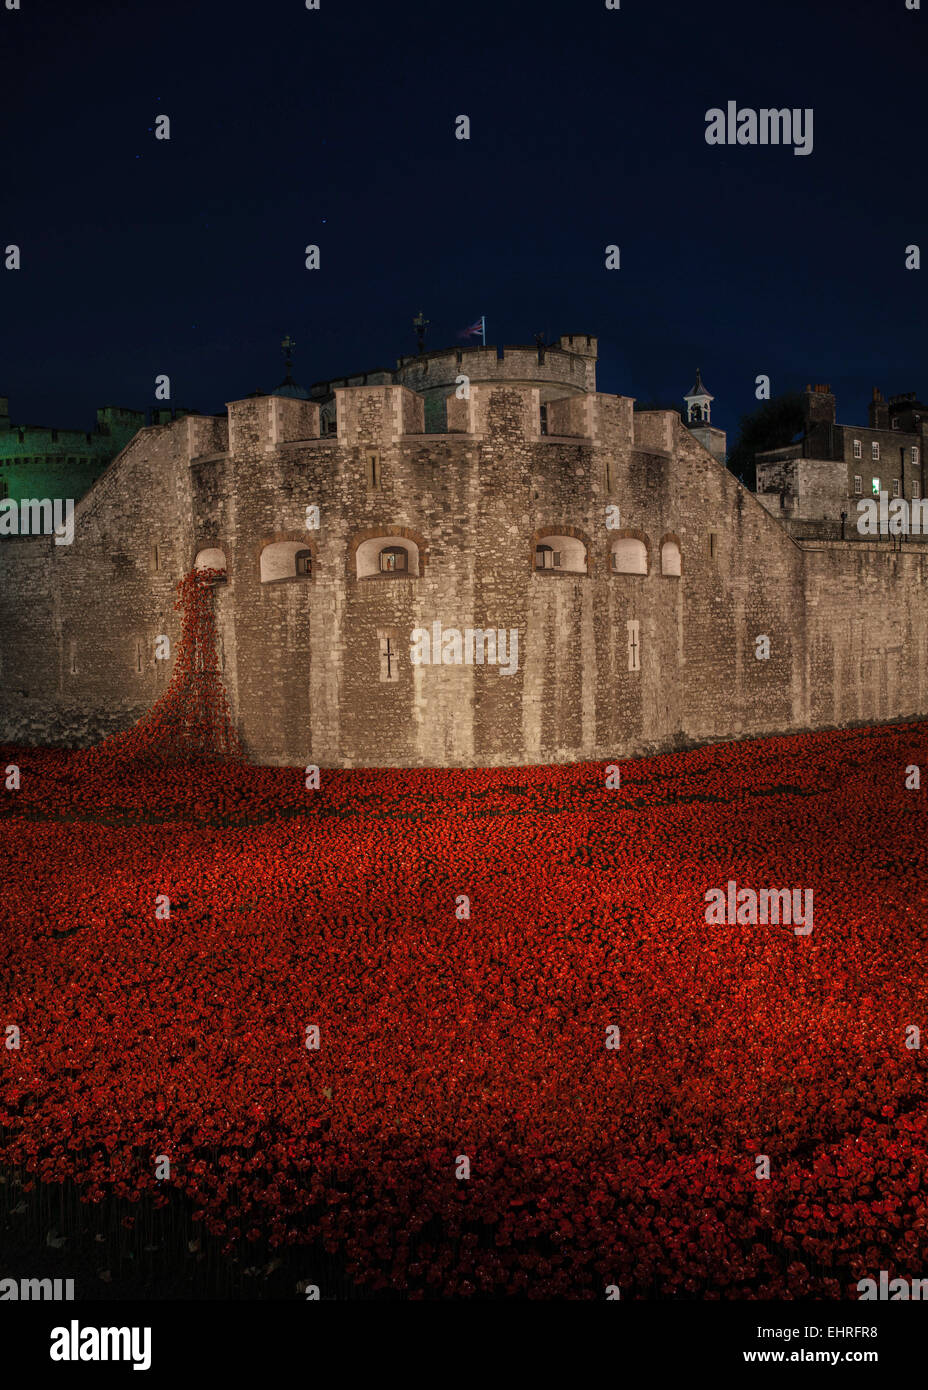 The poppy exhibition for Remembrance Day at the Tower of London - Stock Image